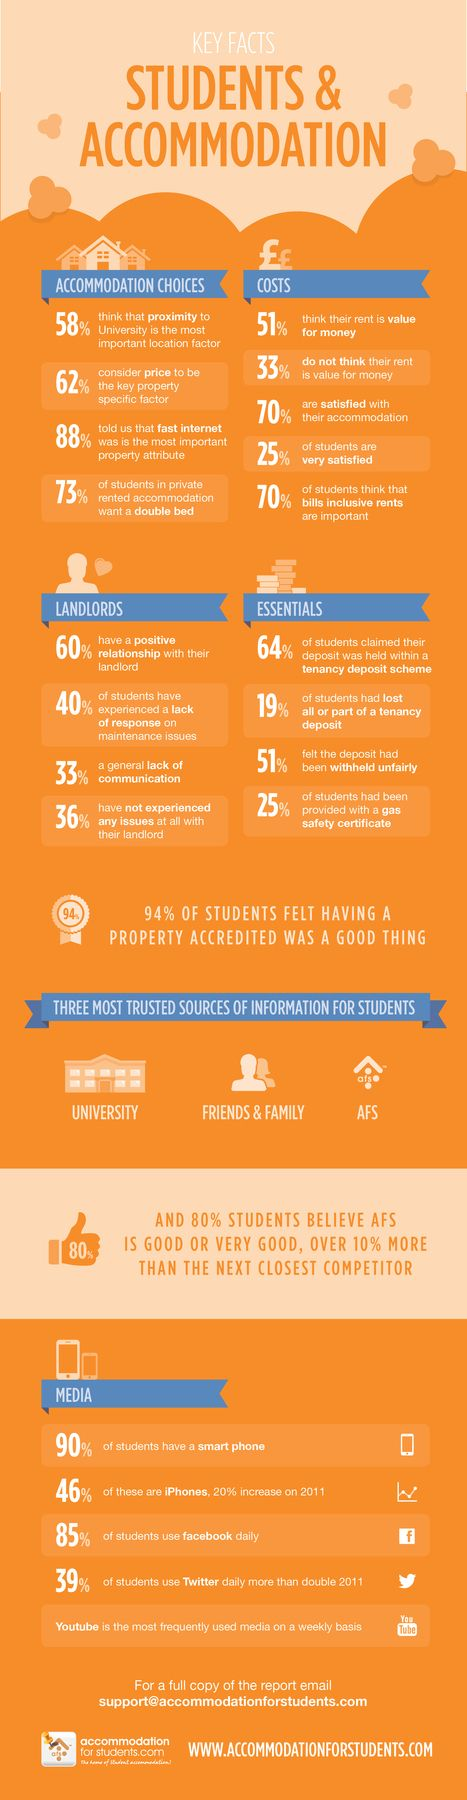 Student Accommodation Infographic. Helps with marketing/ creating adverts. Internet connection v important.